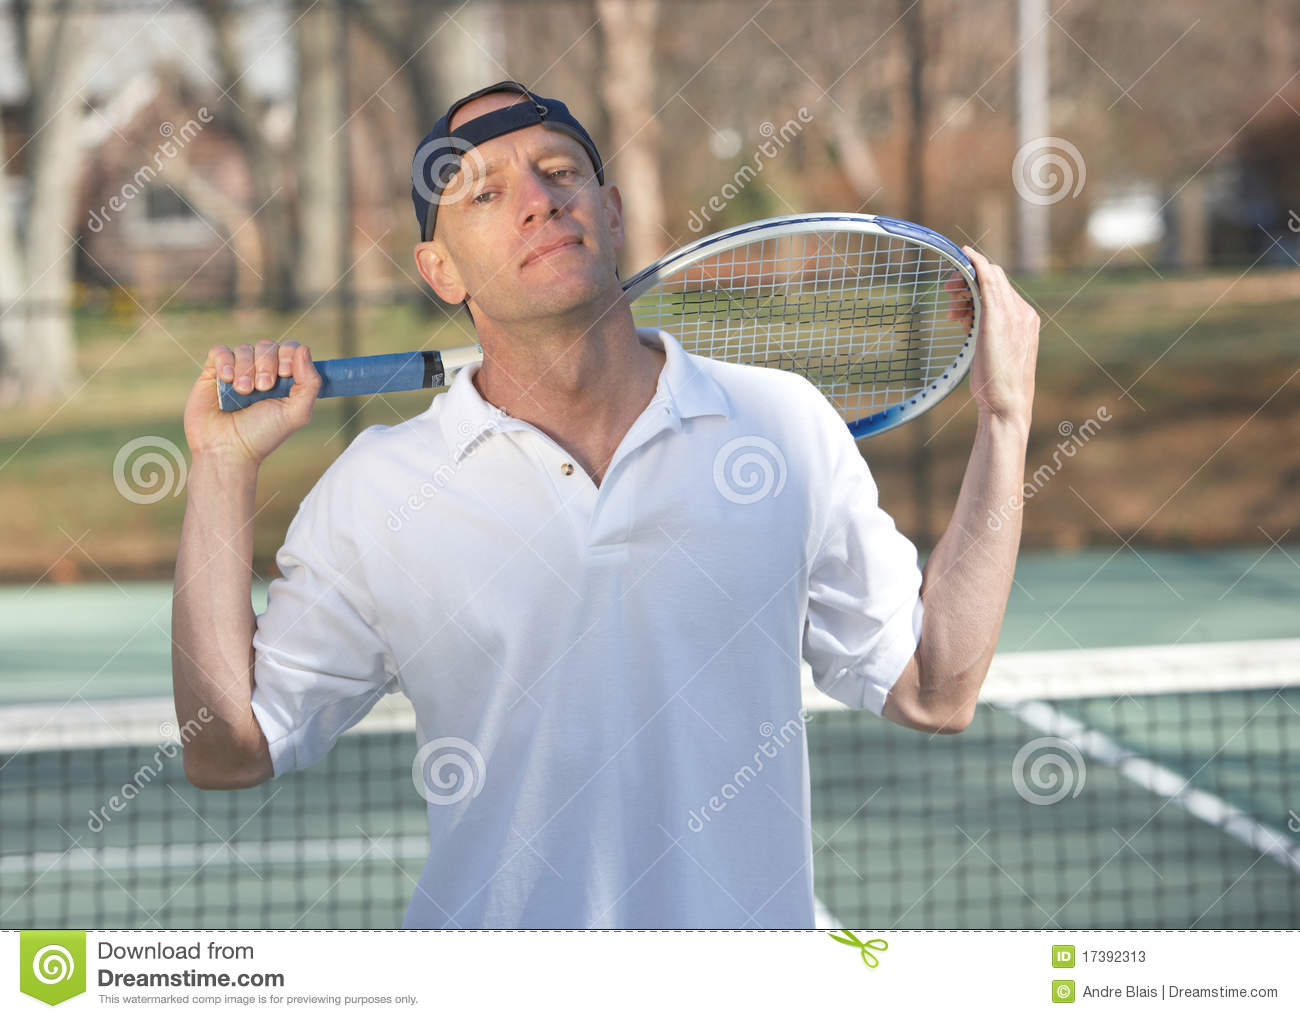 Tennis Instructor Stock Photos - Image: 17392313